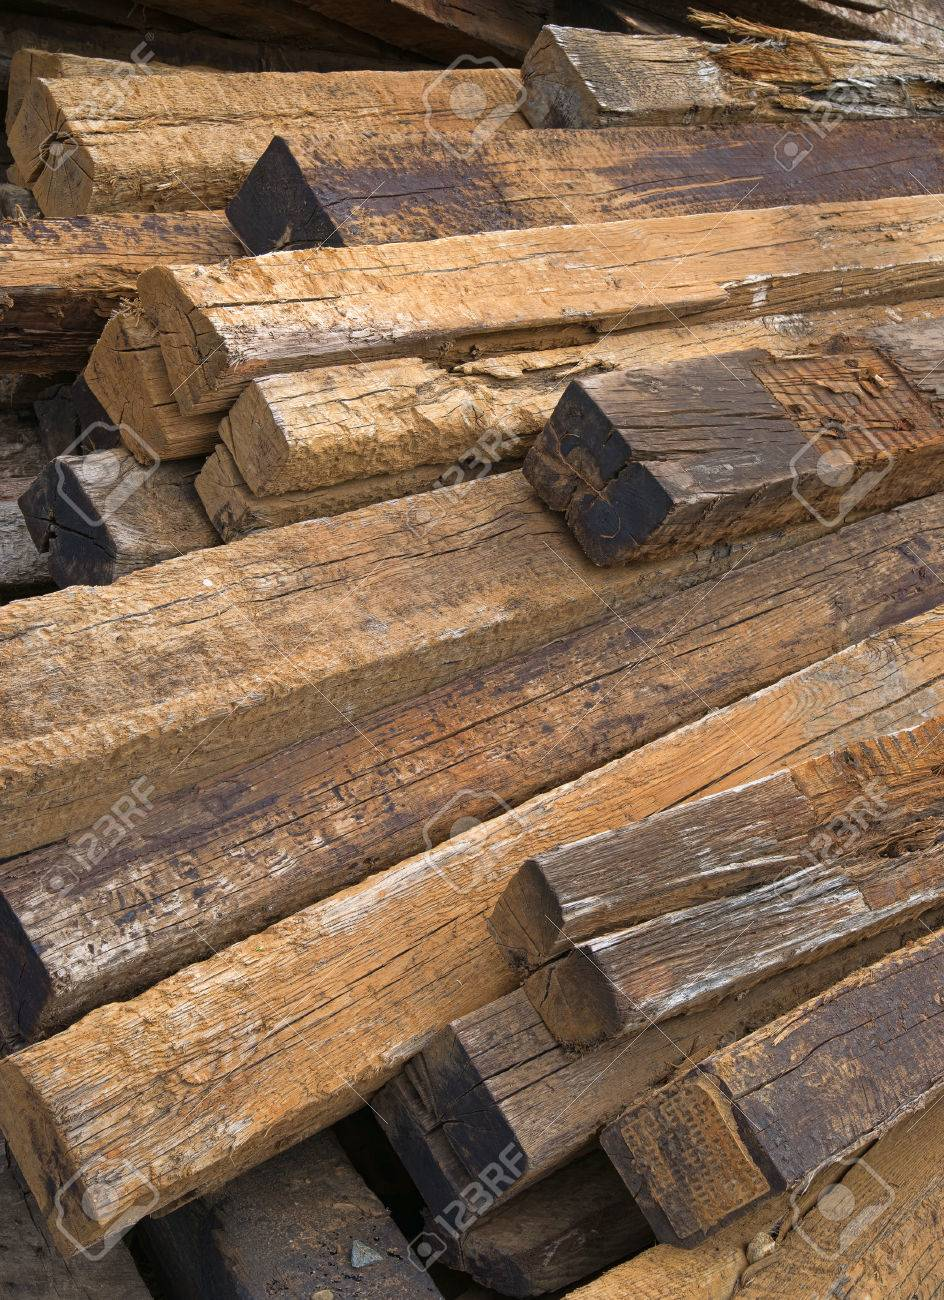 A large pile of used railroad ties left to rot outdoors